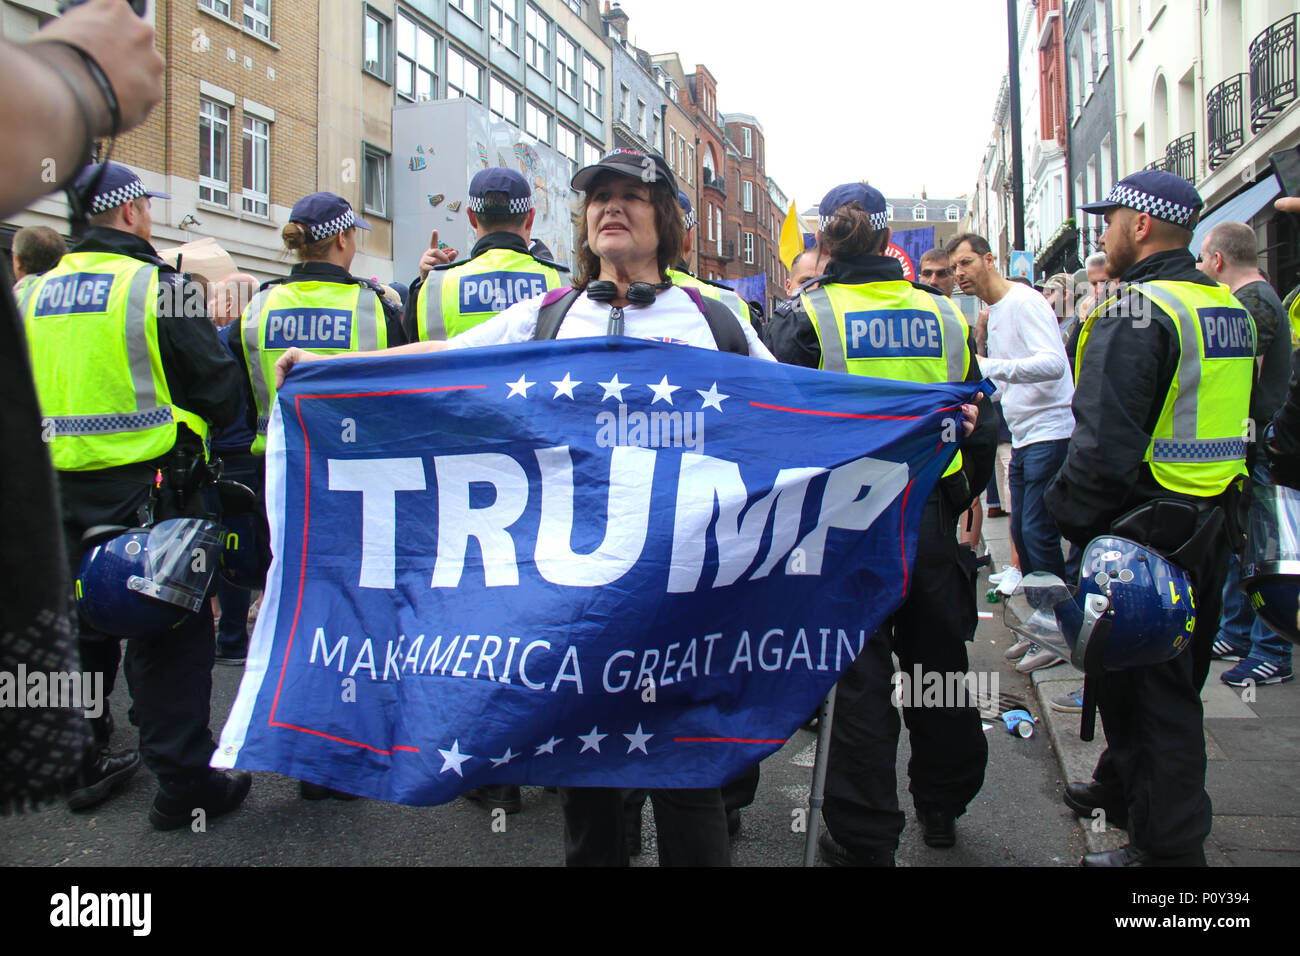 London, UK - 10 June 2018: A female pro-Trump demonstrator by a FRee Tommy Robinson demo group on 10 June 2018.  The Free Tommy Robinson were having a counter demonstration to the Al Quads Day demonstration outside the Saudi Arabian Embassy in  London. The annual event held on the last Friday of Ramadan that was initiated in 1979 to express support for the Palestinians and oppose Zionism and Israel. Credit: David Mbiyu Credit: david mbiyu/Alamy Live News - Stock Image